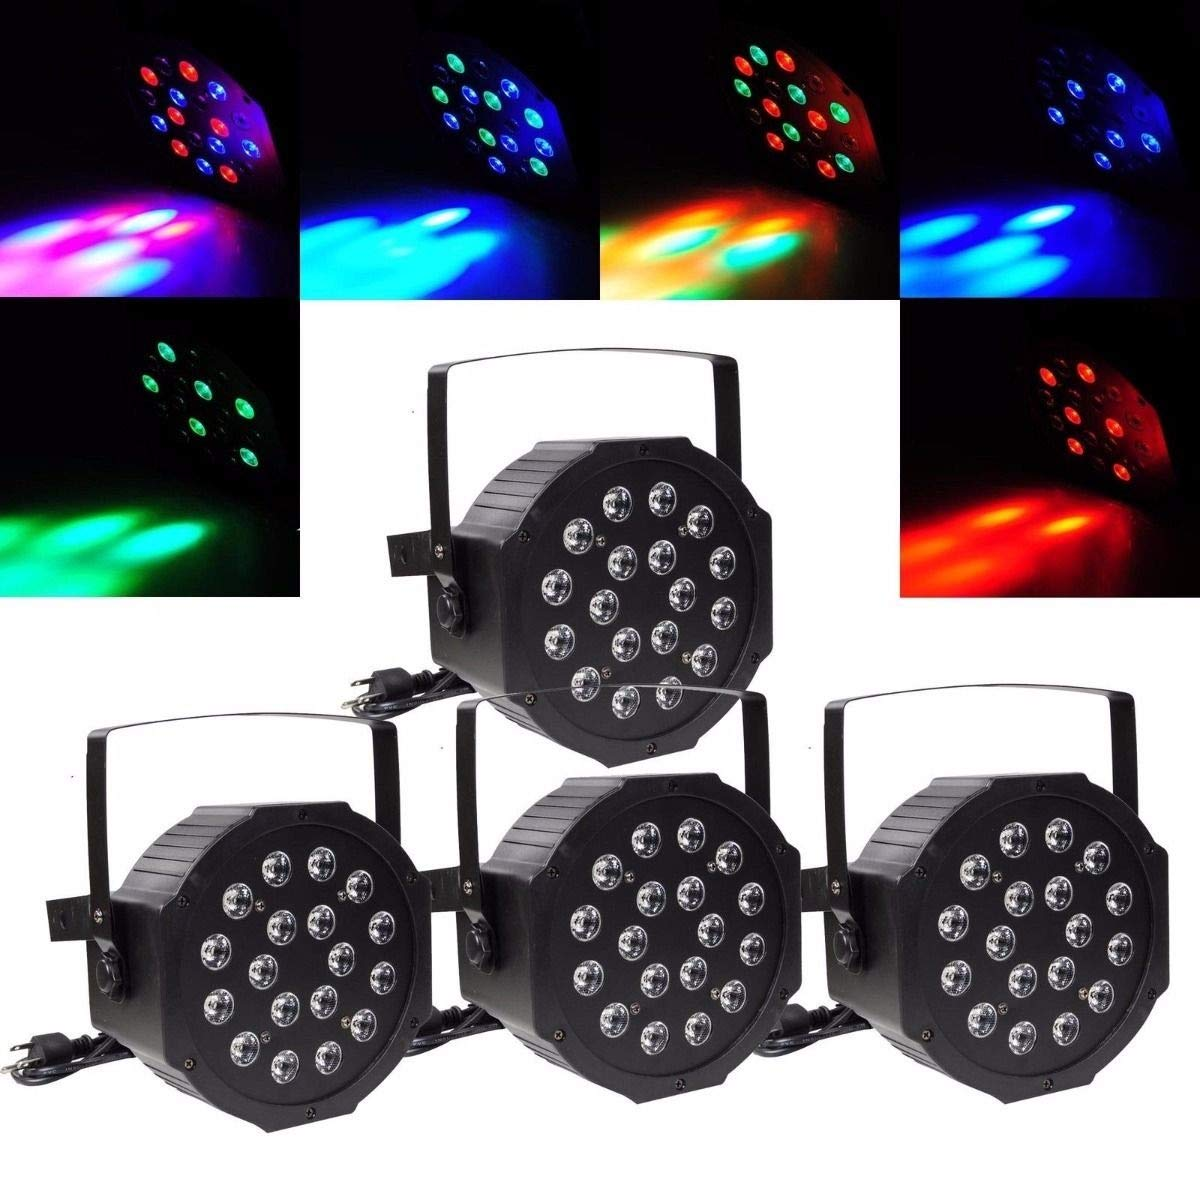 Youtree 18 LED RGB PAR CAN DJ Stage DMX Lighting for Disco Party Wedding Uplighting Light (Size : 4 Pack)